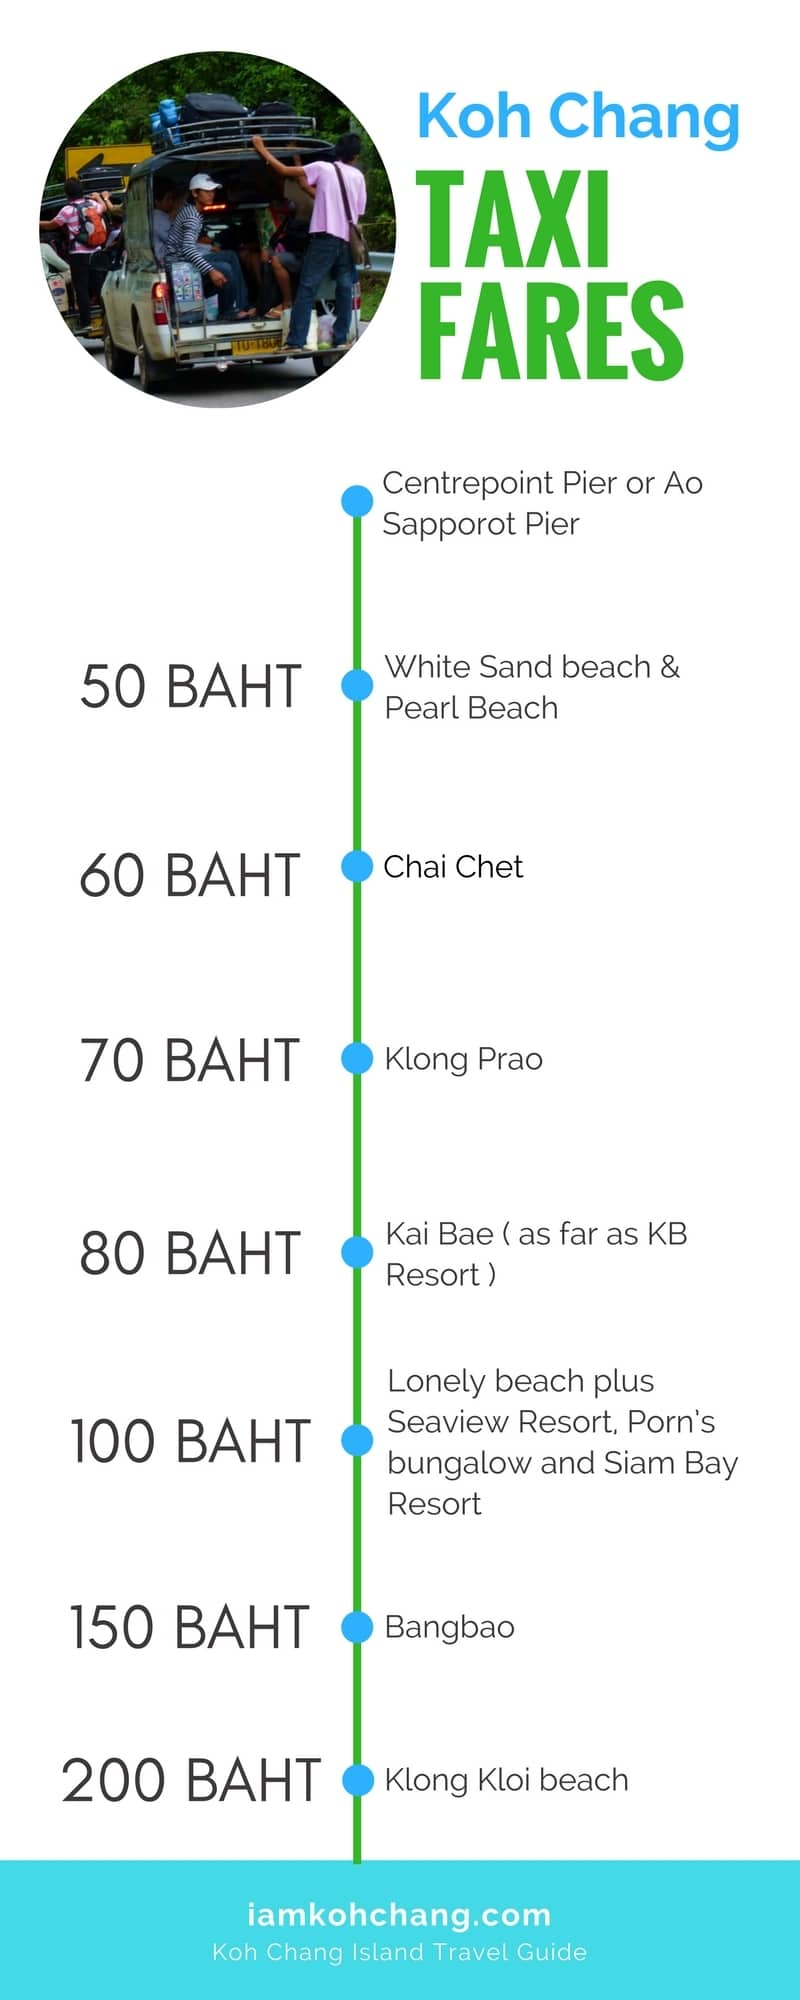 Price list for taxi ( songtaew) fares on Koh Chang island, Thailand